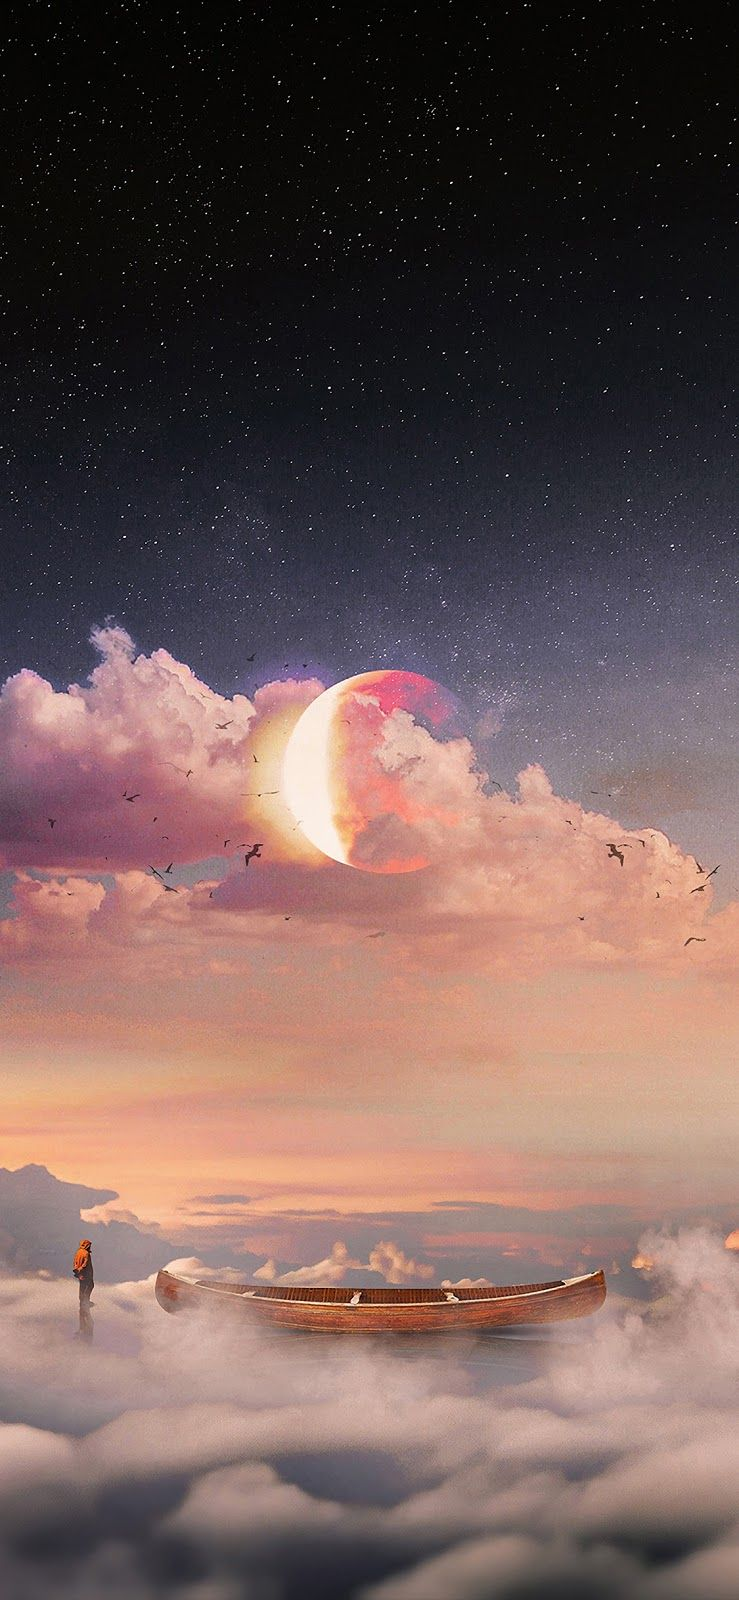 Floating on clouds (iPhone X) Cool iphone wallpapers hd